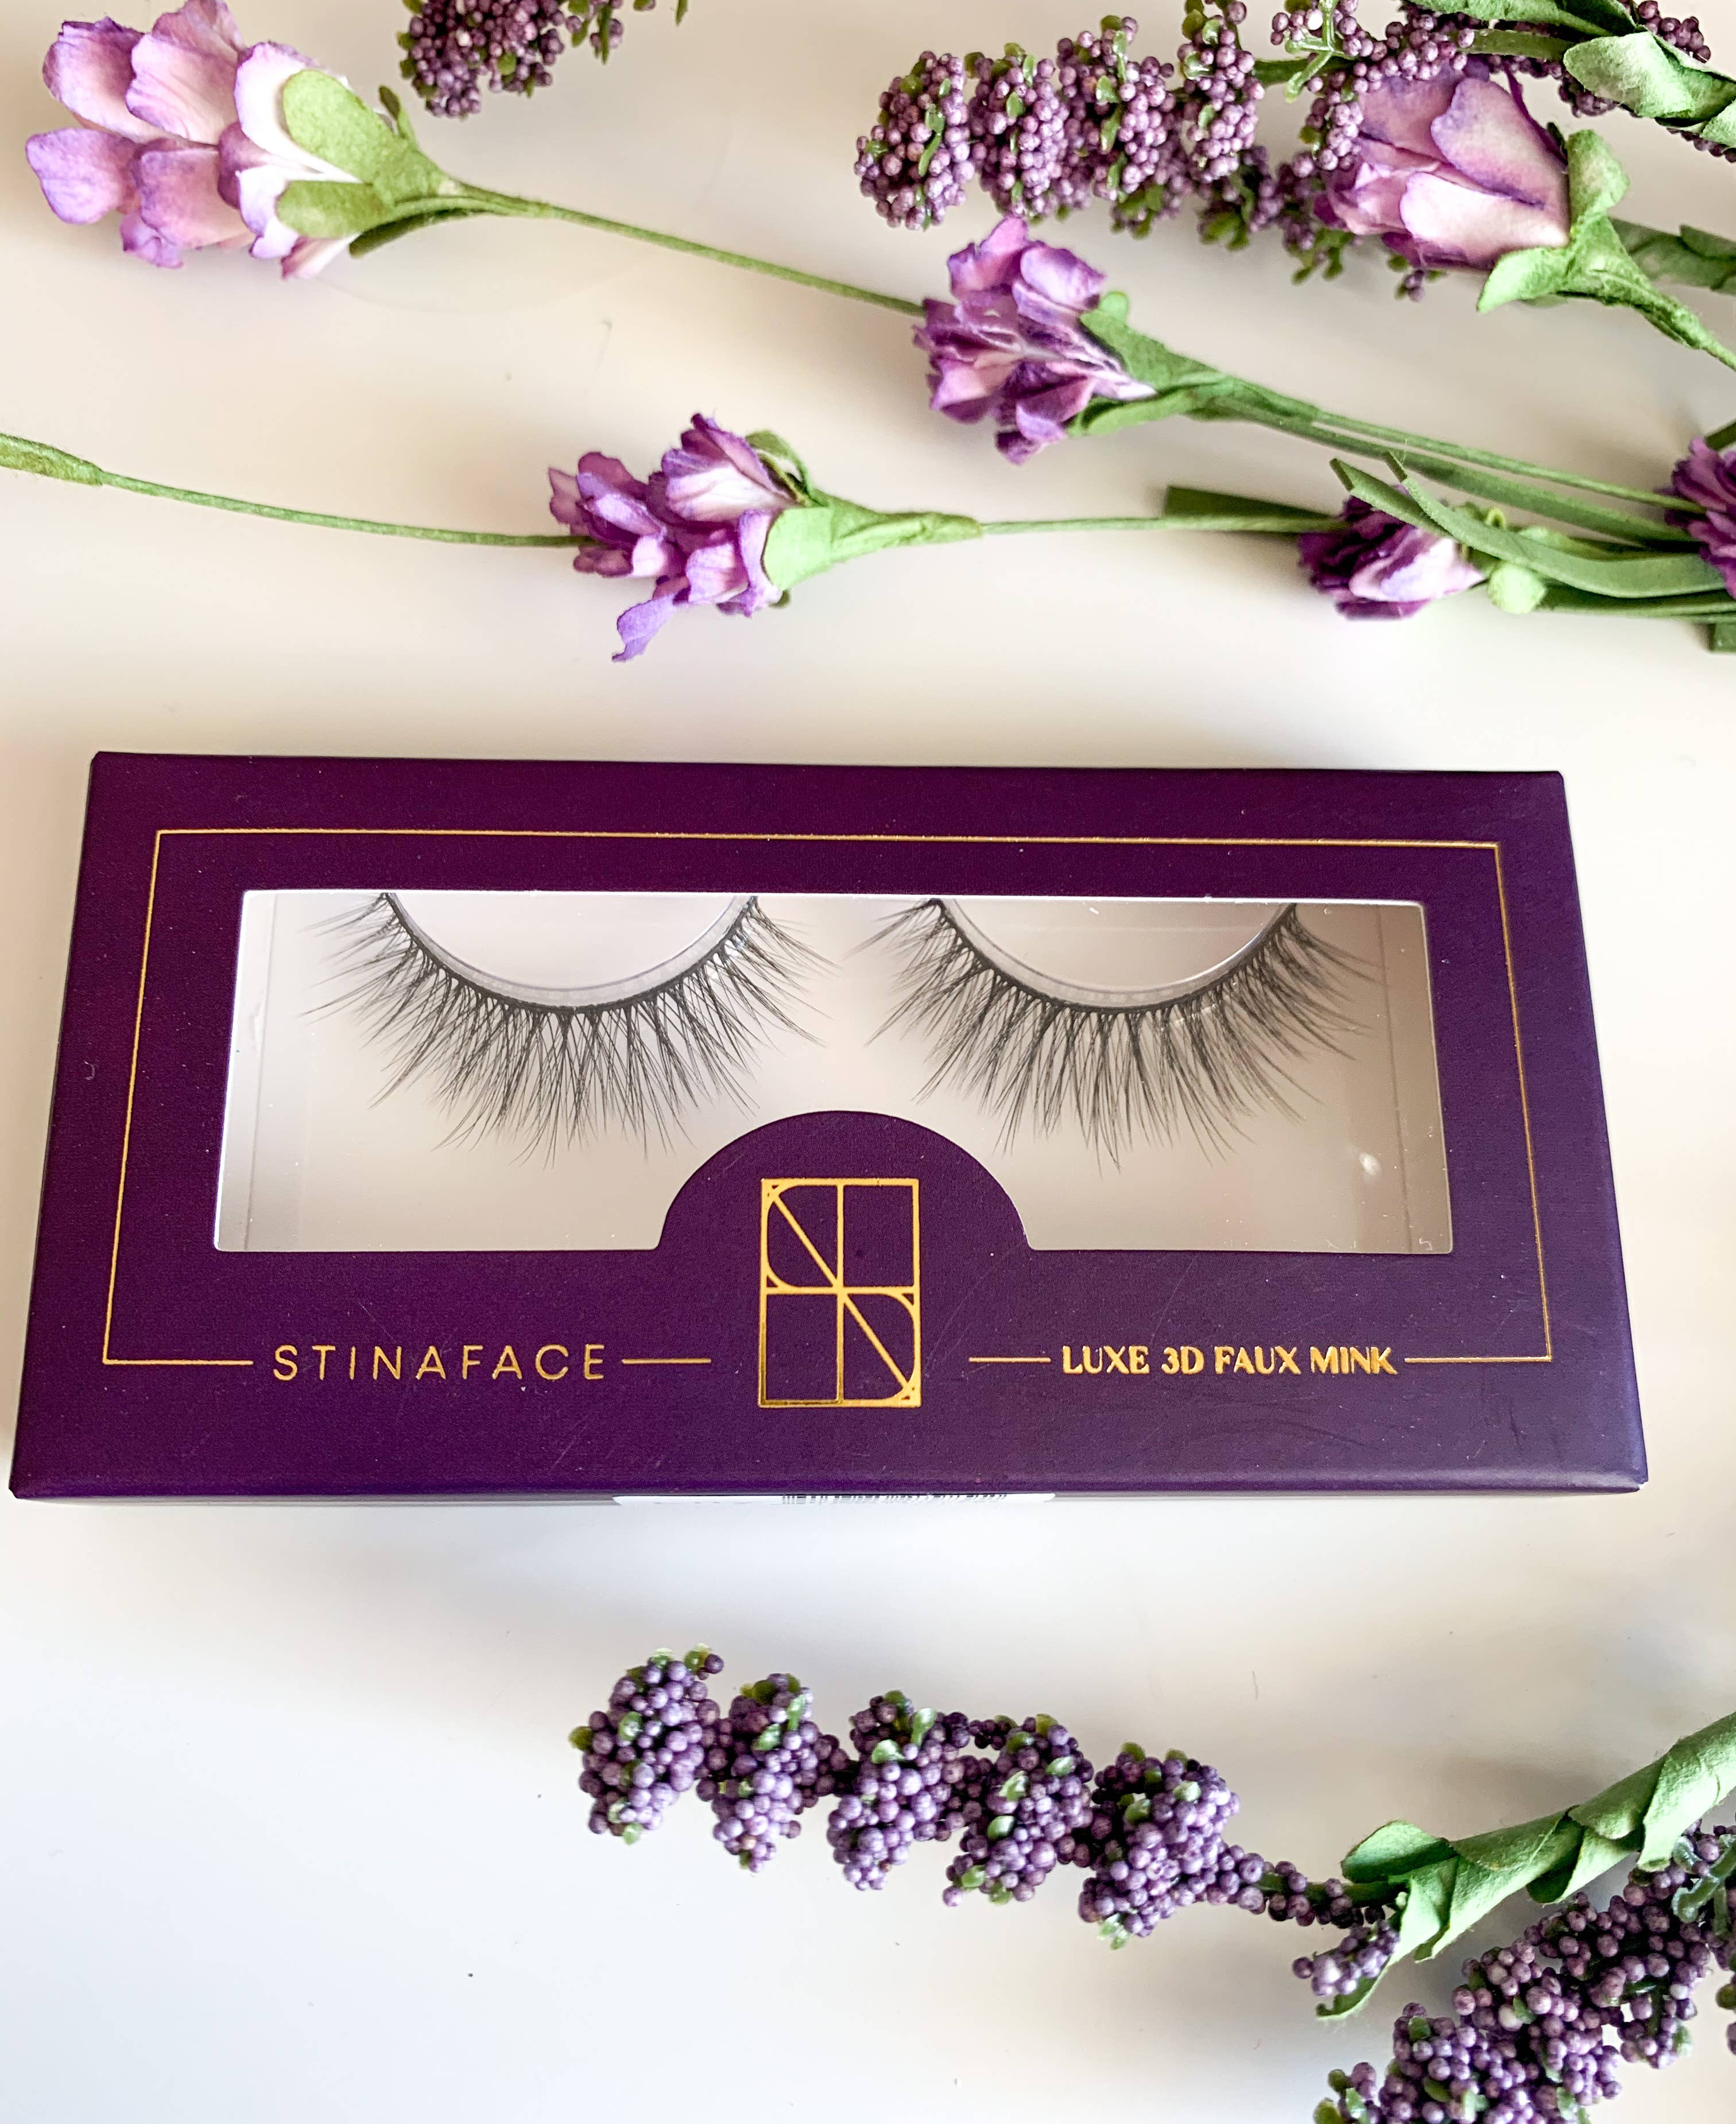 3D Faux Mink Lashes - LILY   Trada Marketplace